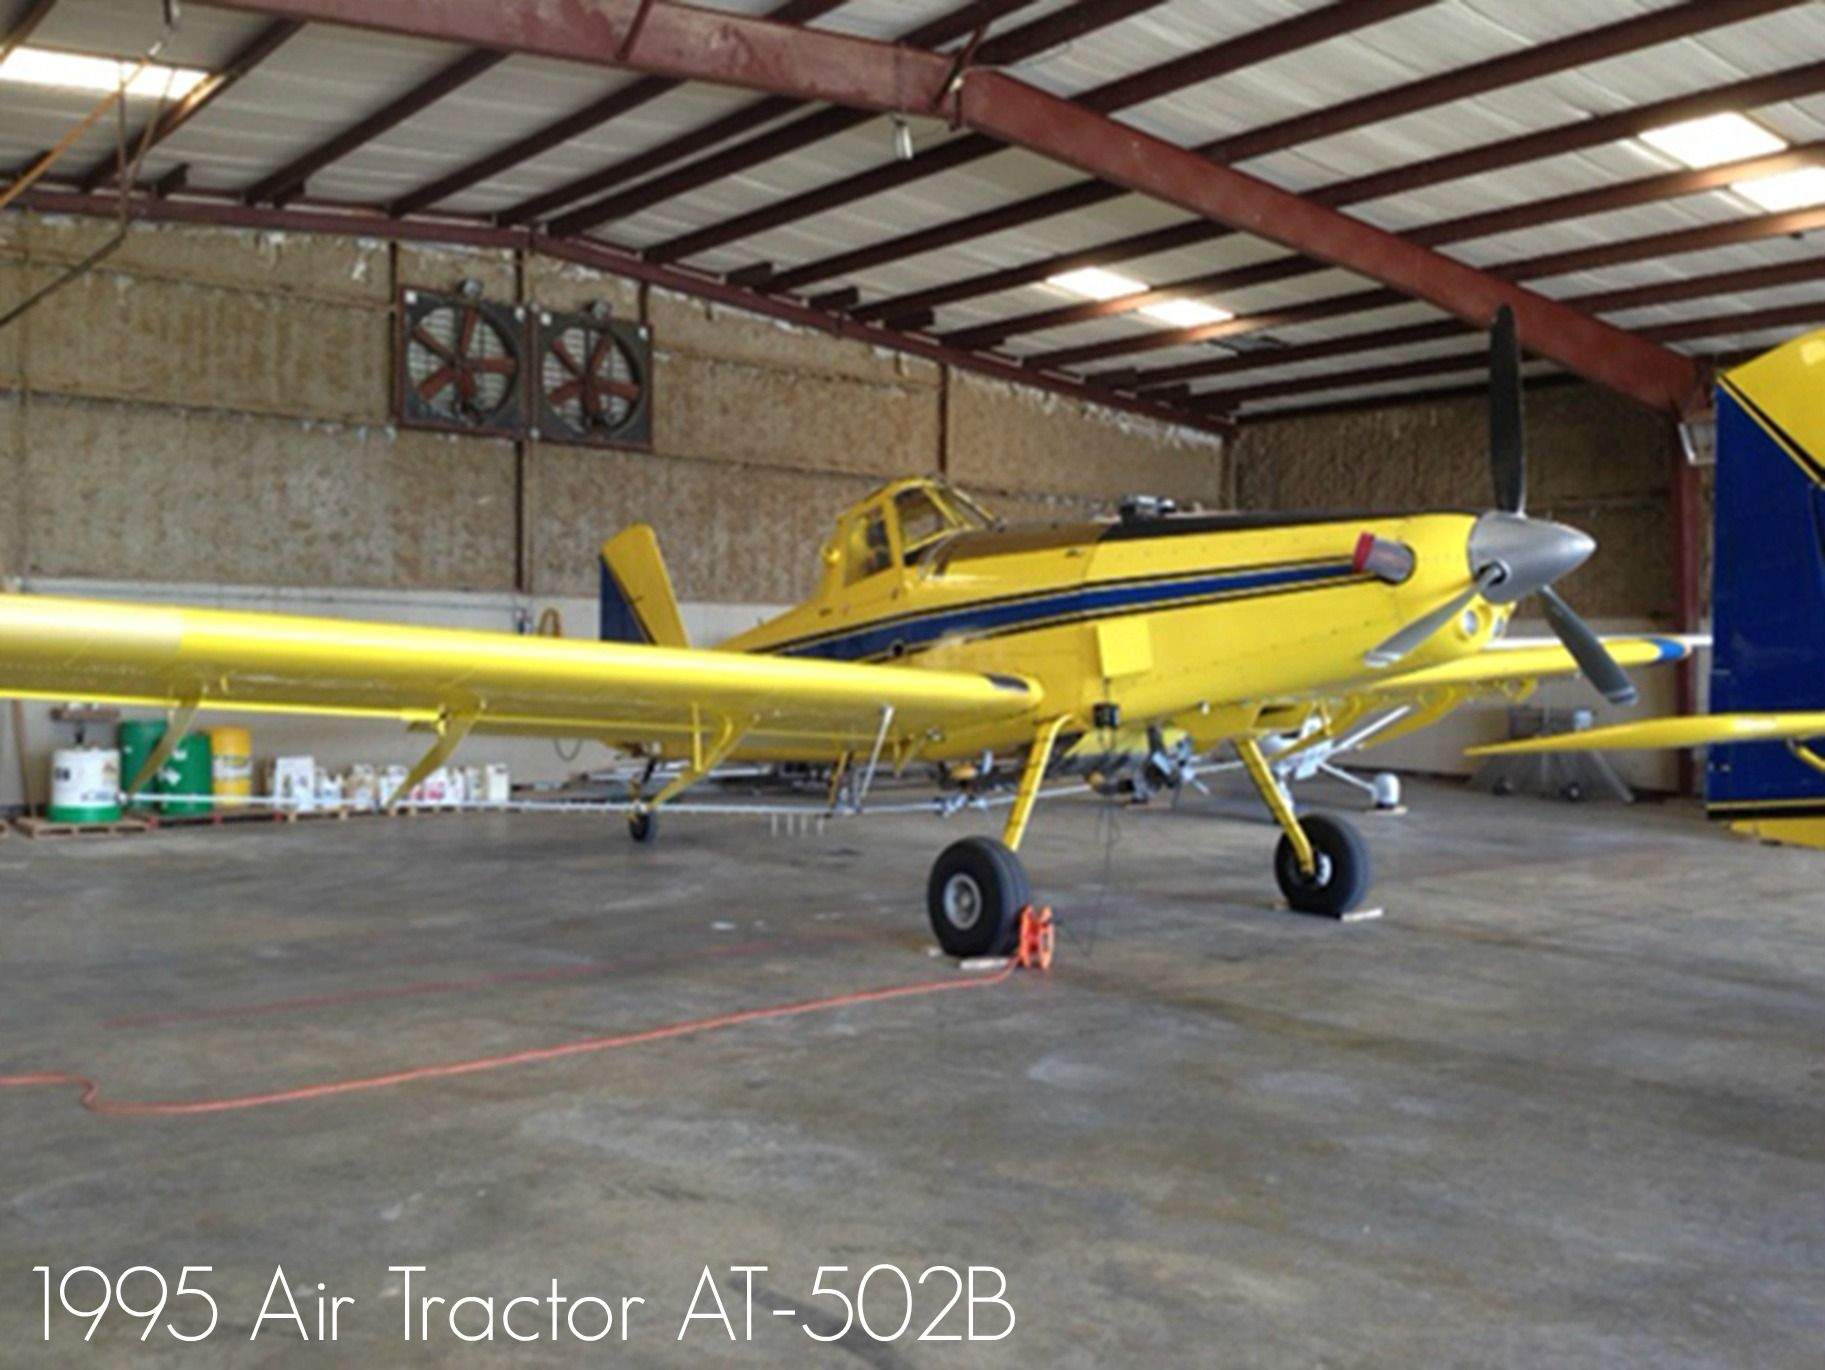 1995 Air Tractor AT-502B available at www.trade-a-plane.com